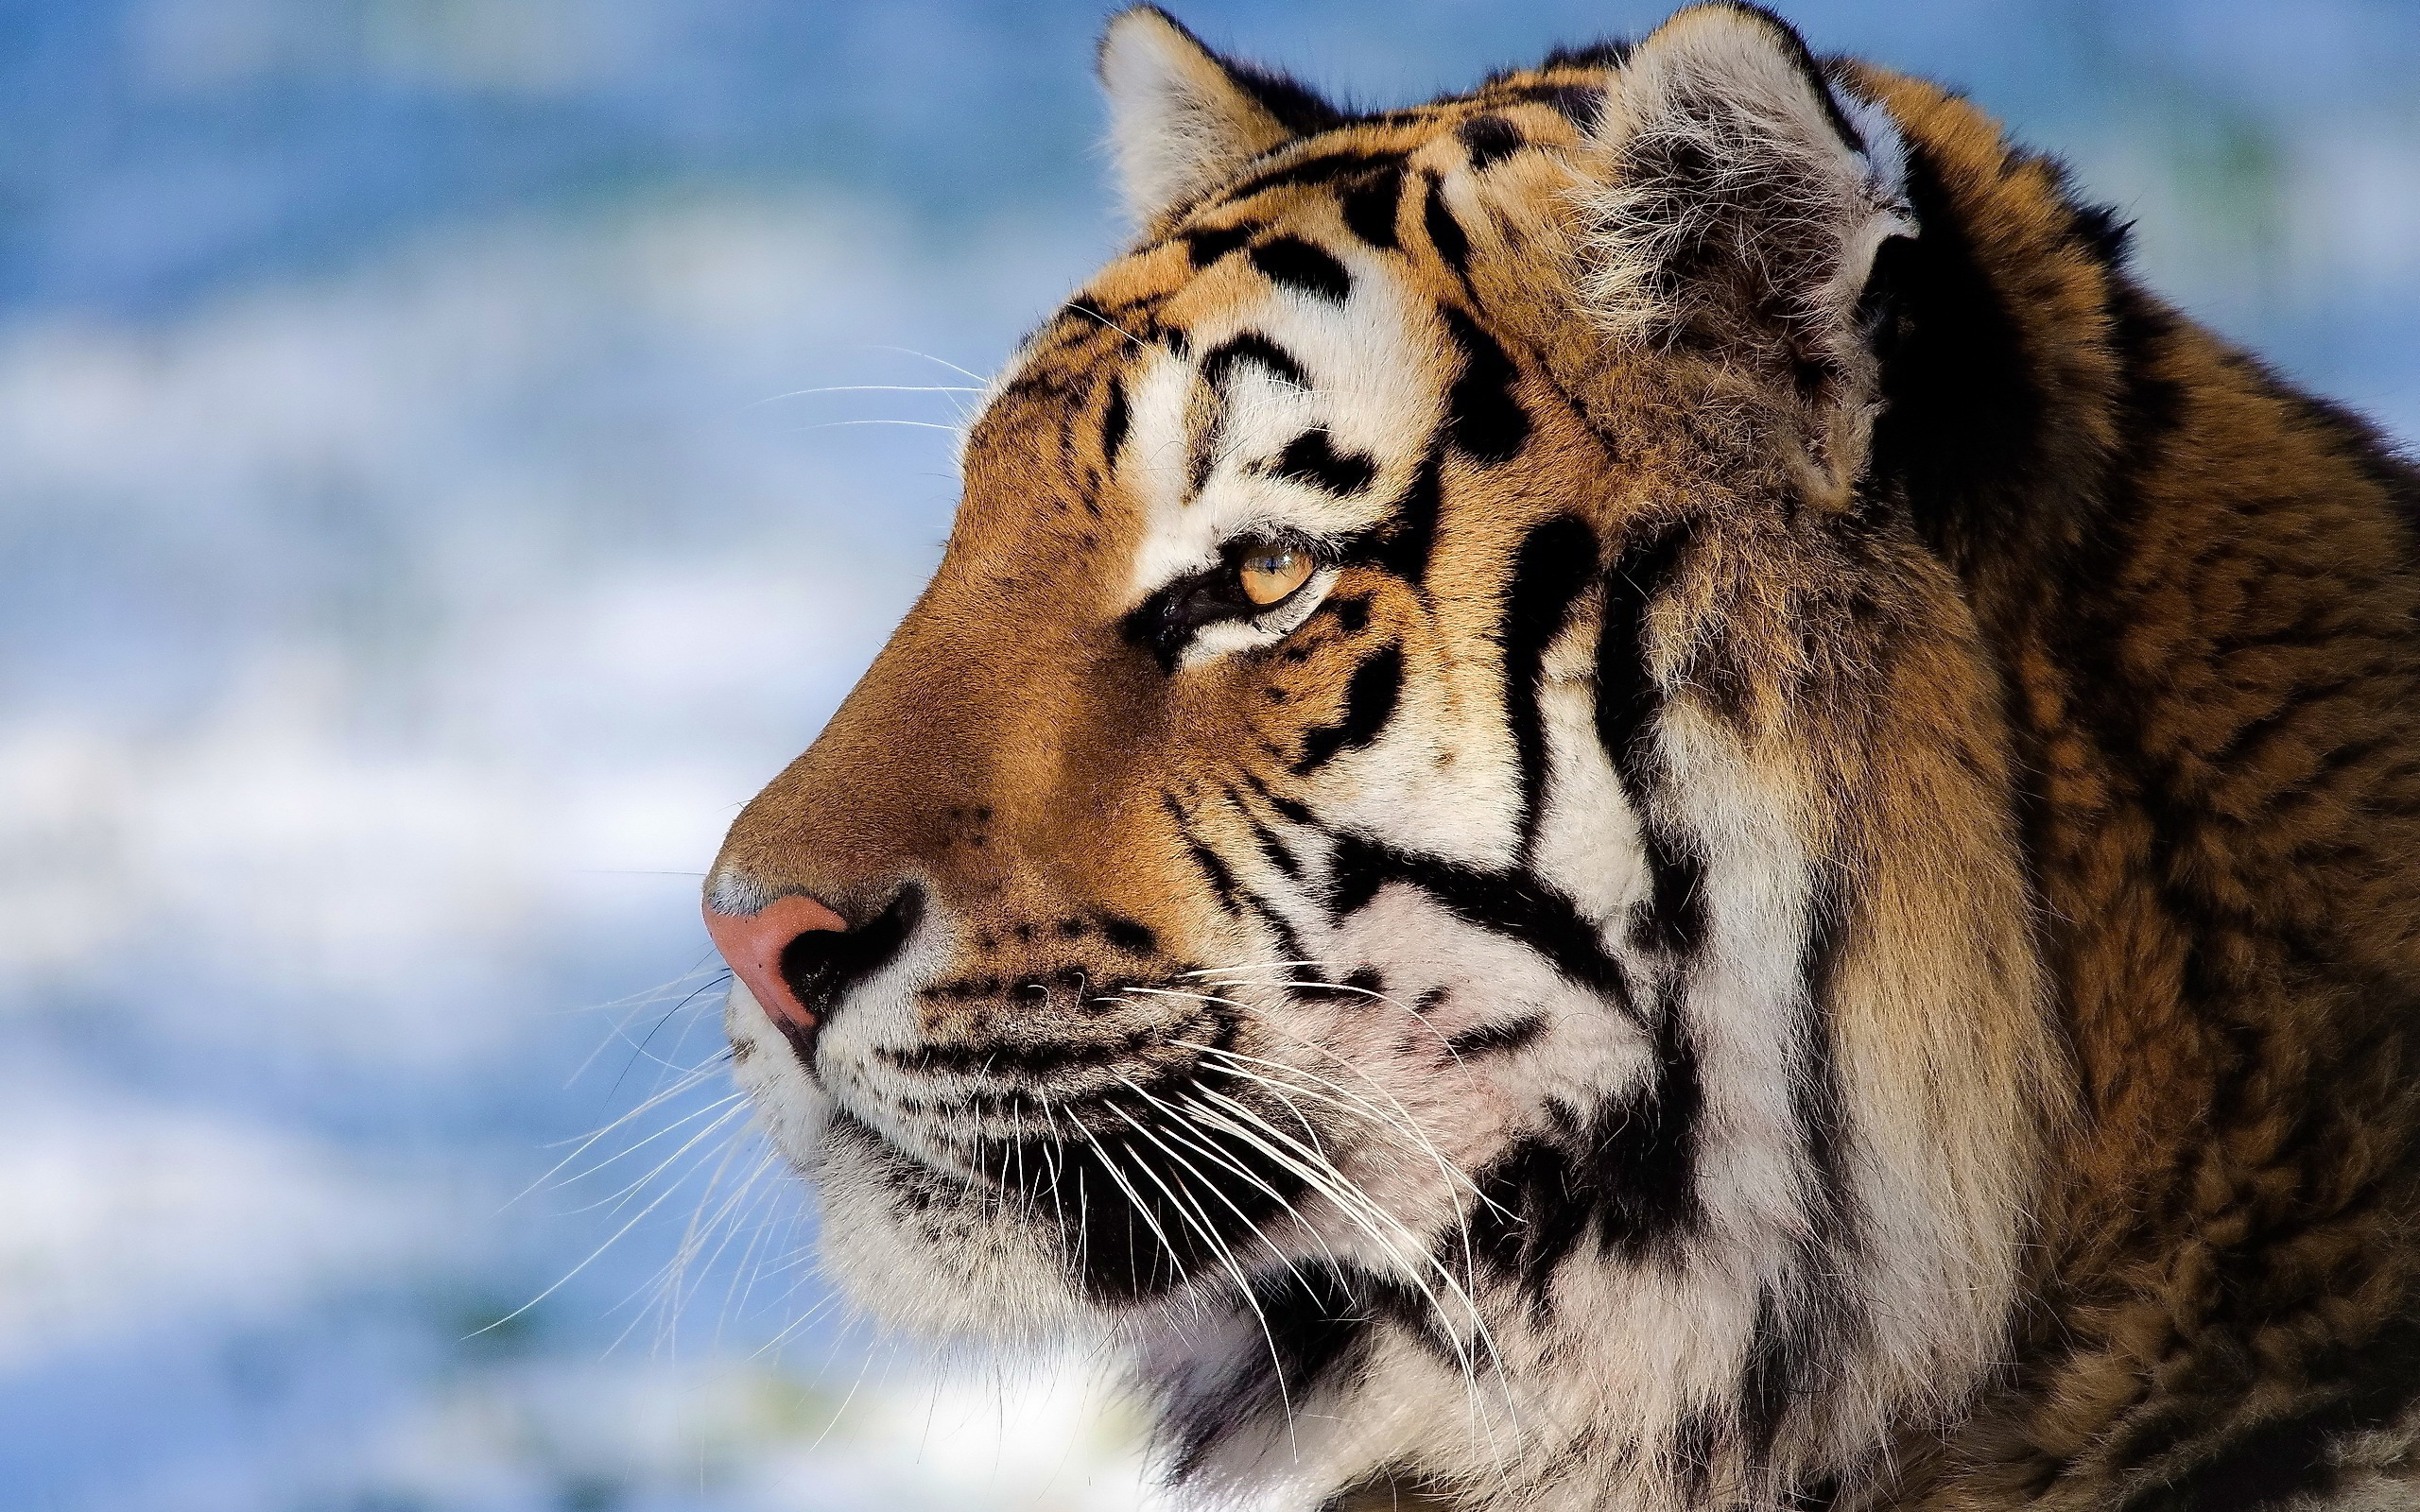 Tiger Face Wallpapers  Pictures  Wallpaper Backgrounds